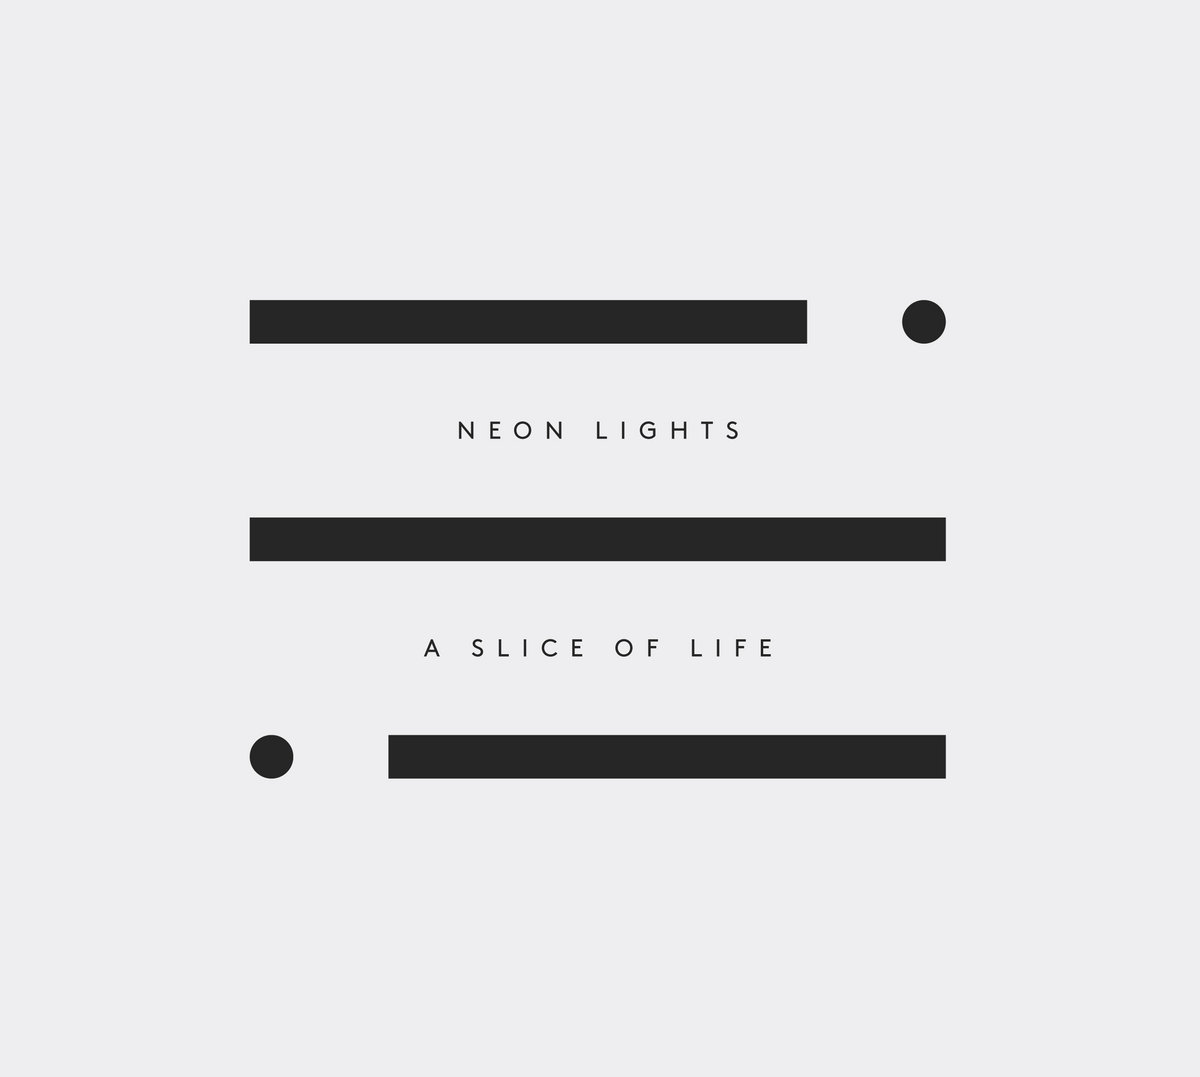 A Slice of Life | Neon Lights